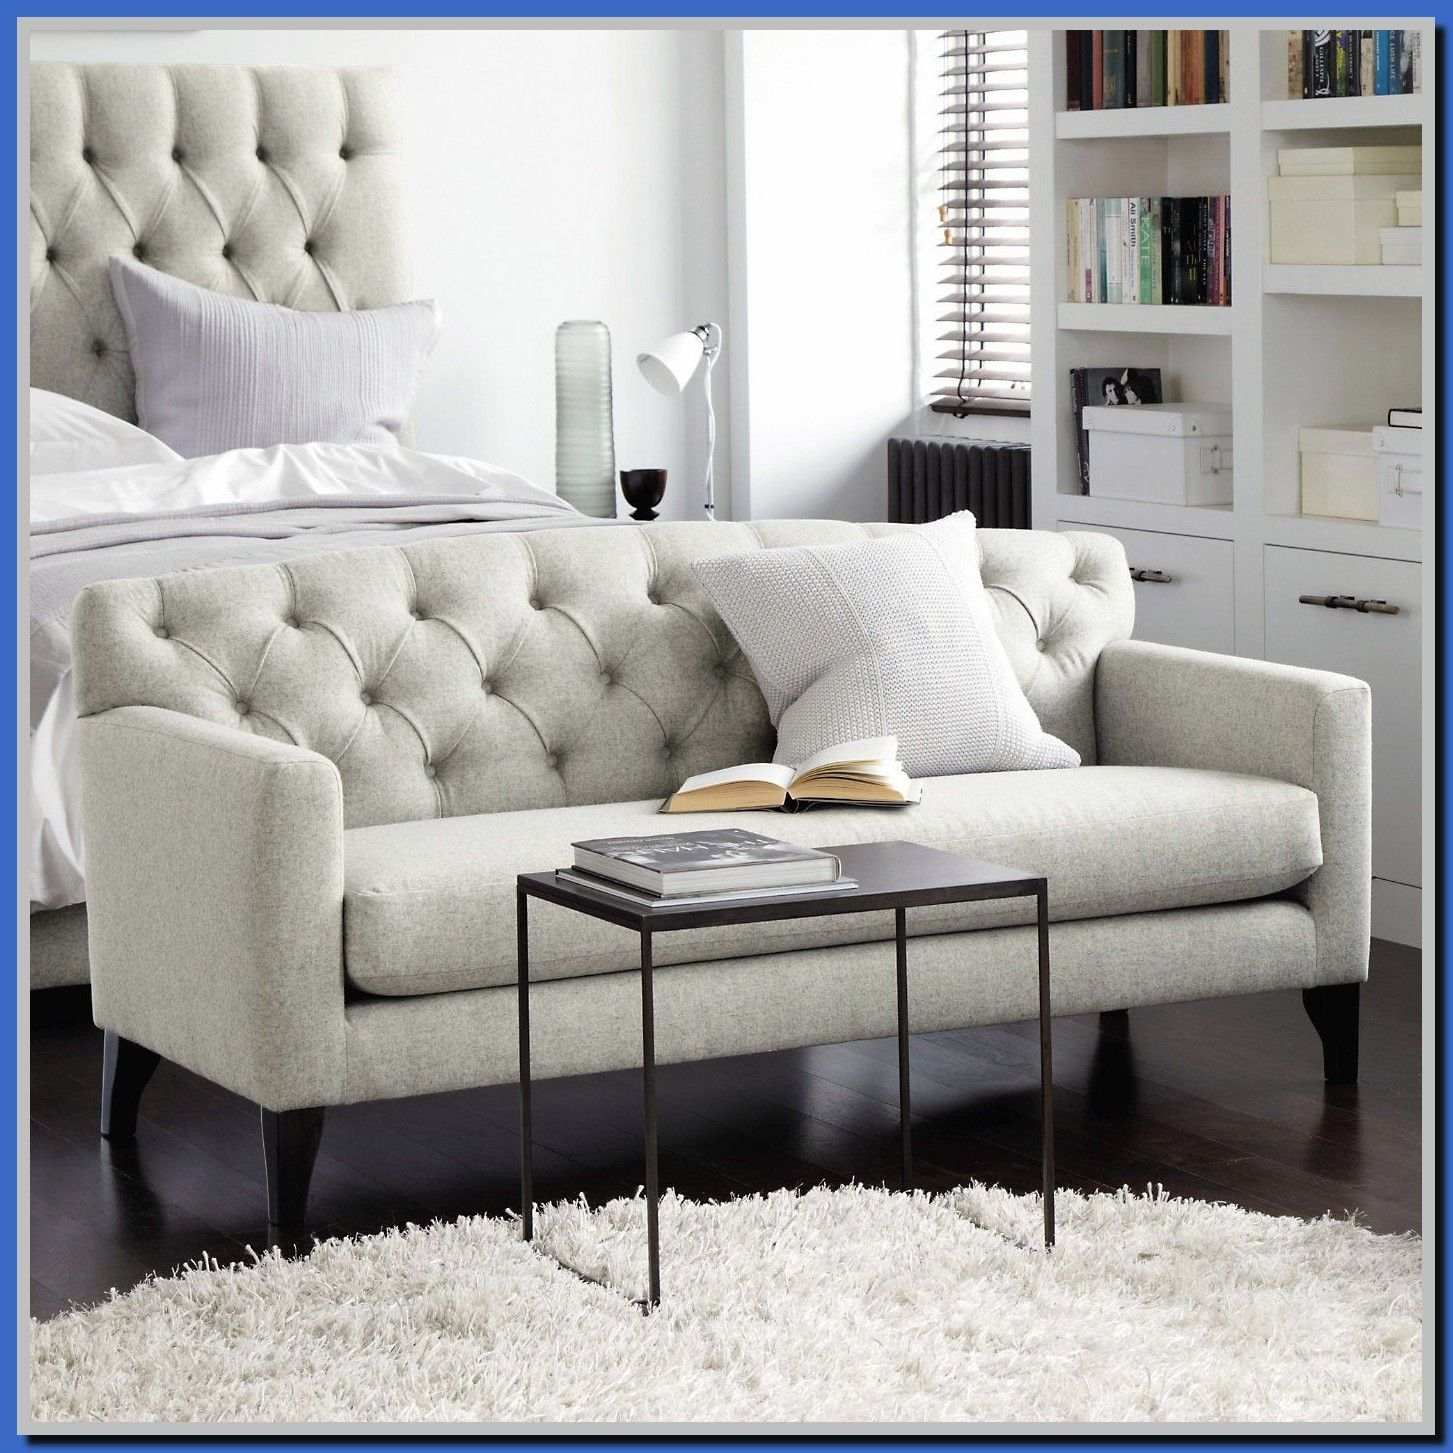 58 Reference Of Sofa Bedroom Furniture In 2020 Small White Bedrooms Bedroom Couch Couch And Loveseat